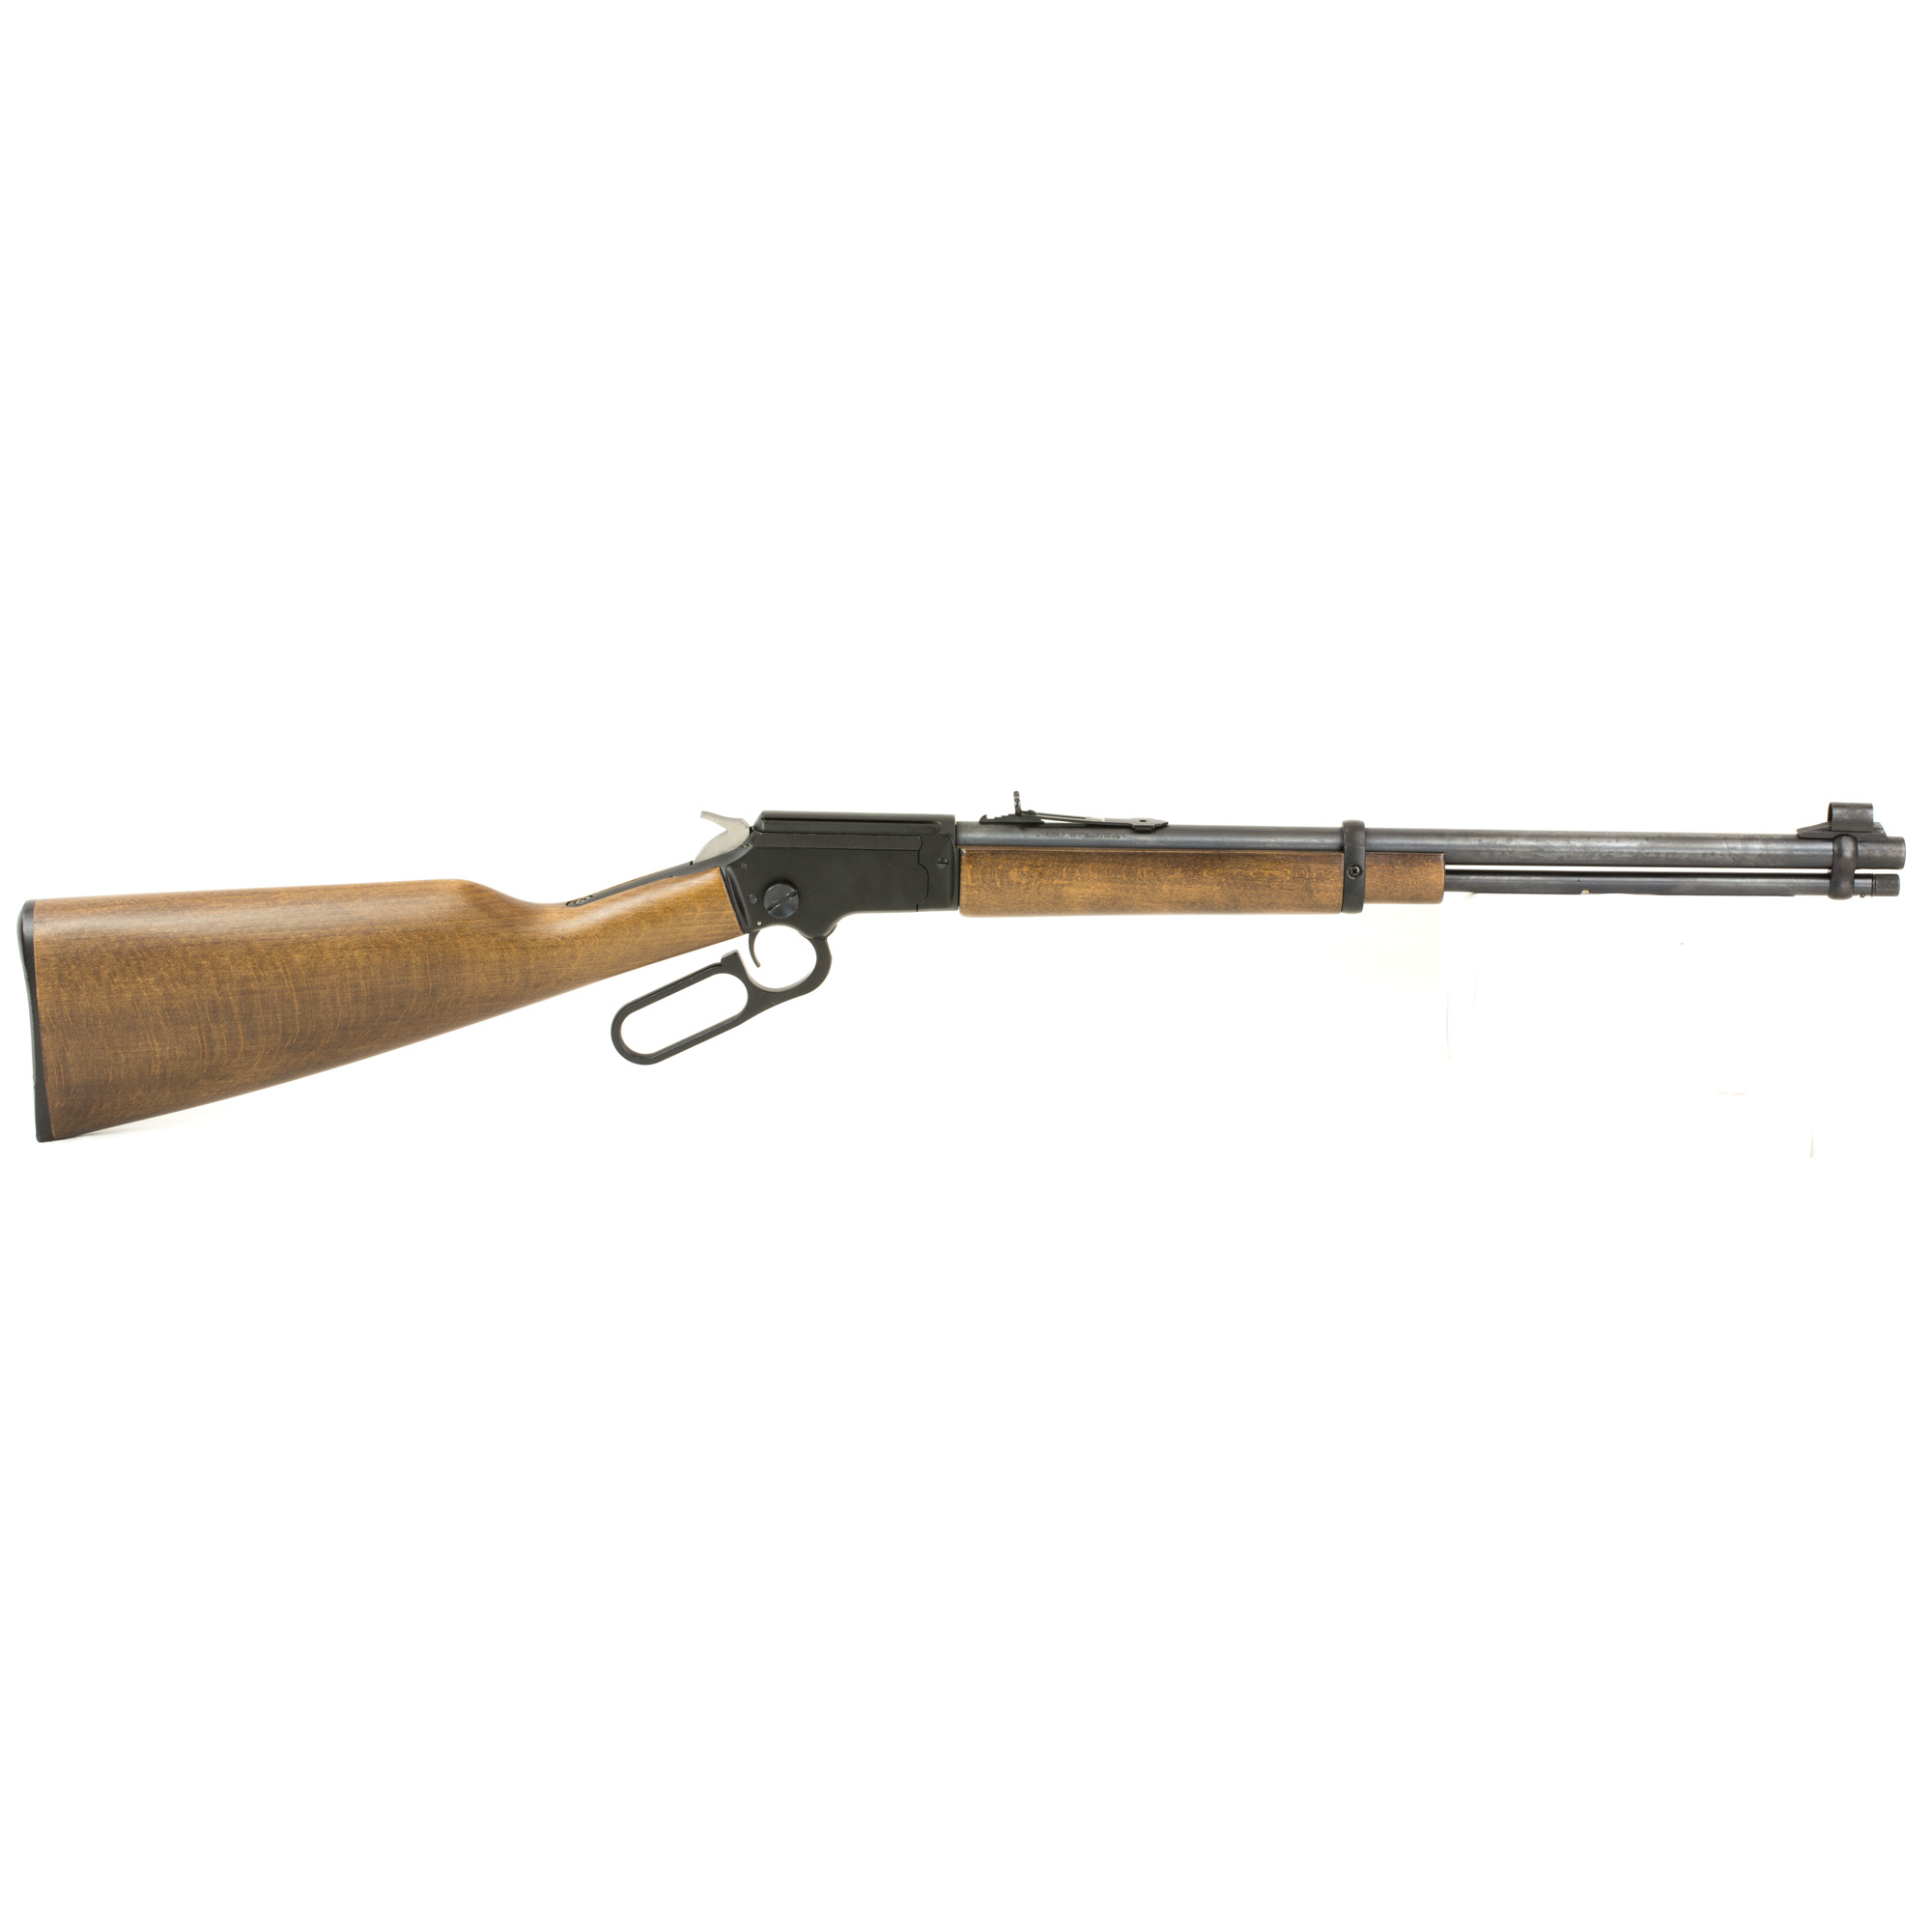 "The lever action .22lr is an American classic. Chiappa continues this legacy by using modern technology and materials to produce the LA322. This beautiful rimfire is as attractive as it is functional. Accurate"" quick handling and rapid shooting"" the LA322 embodies all the qualities that Americans want in a lever action rifle. A 3/8"" dovetail is machined into the top of the receiver so optics are easily added for small game hunting or plinking. Another coveted feature is the take down design letting the shooter easily and quickly separate the buttstock from the action for easy transport and storage."